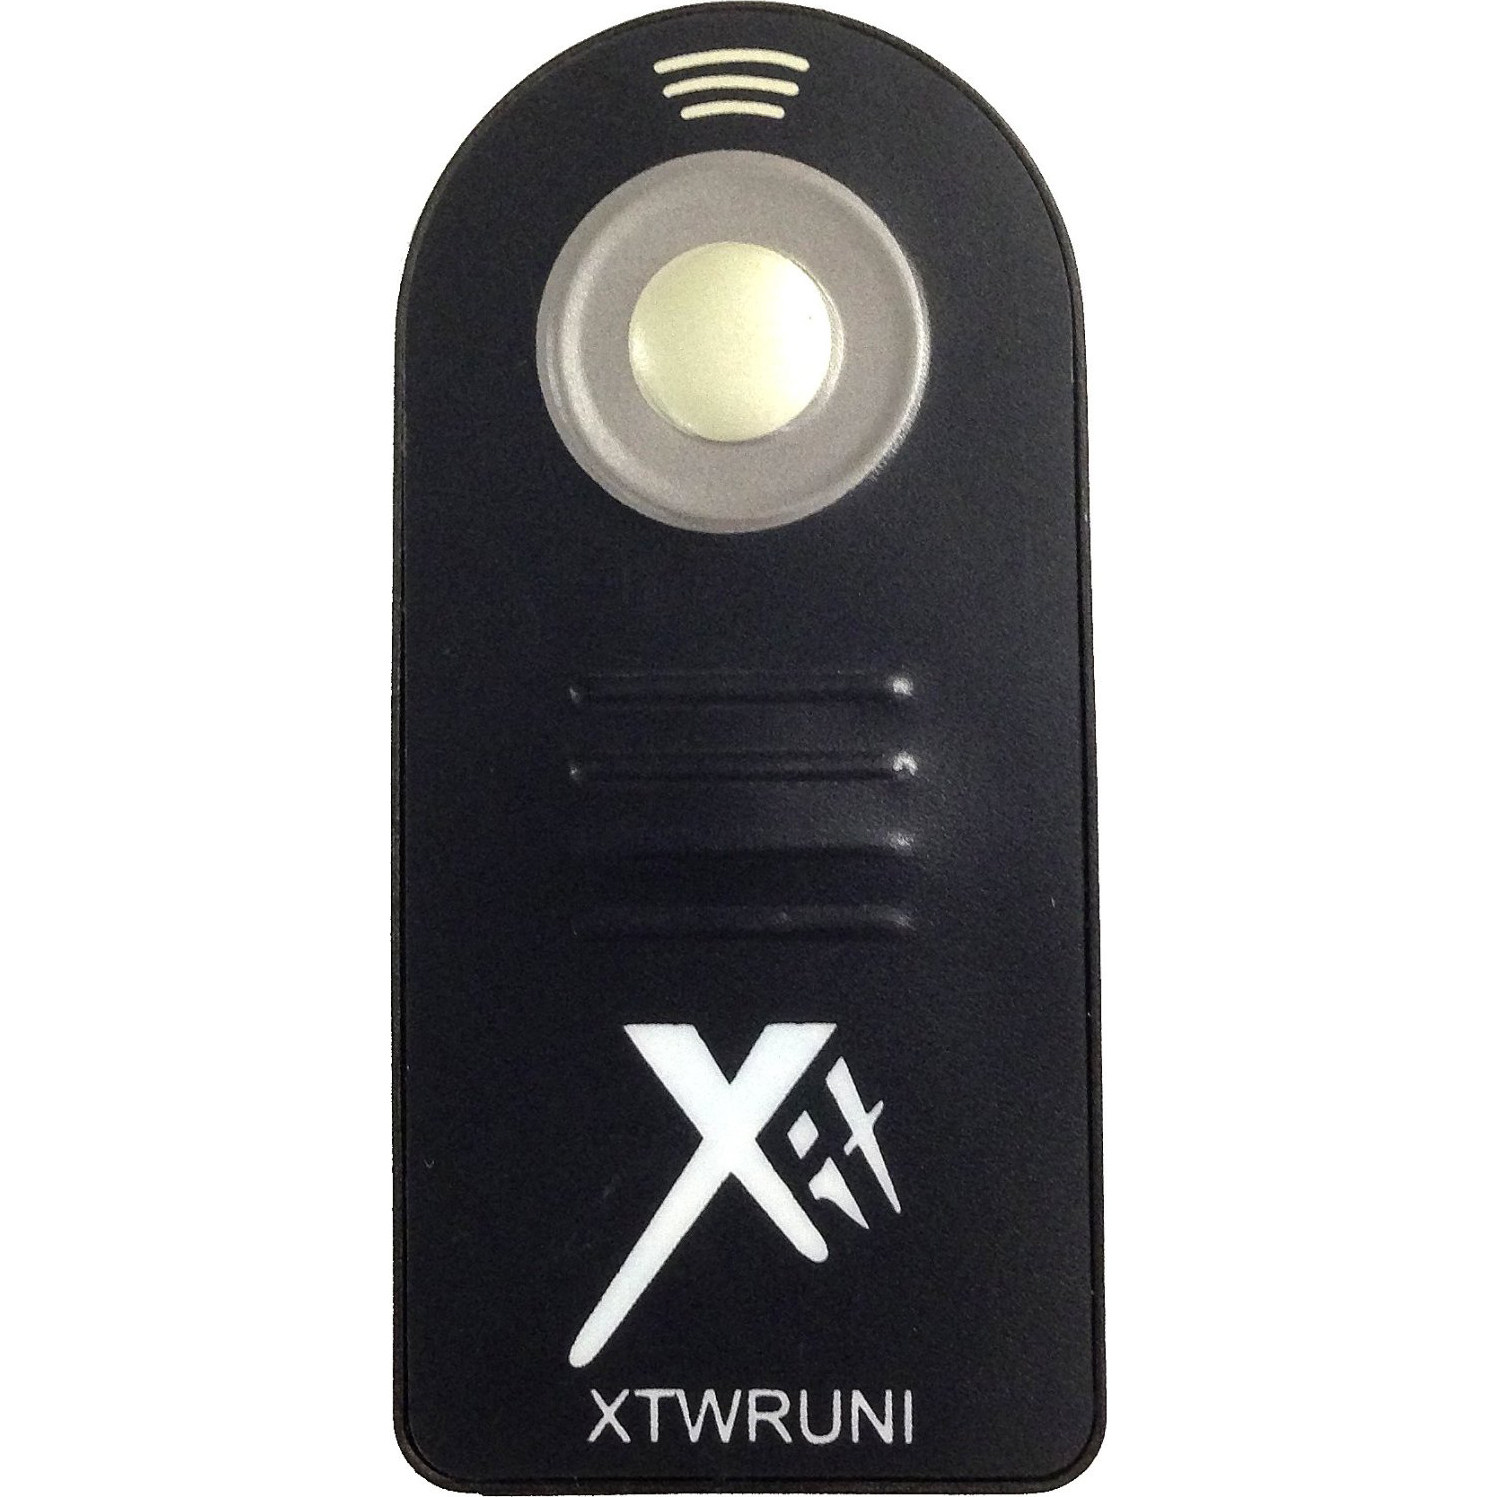 Xit Wireless Shutter Release Remote Control for Canon, Nikon, Sony